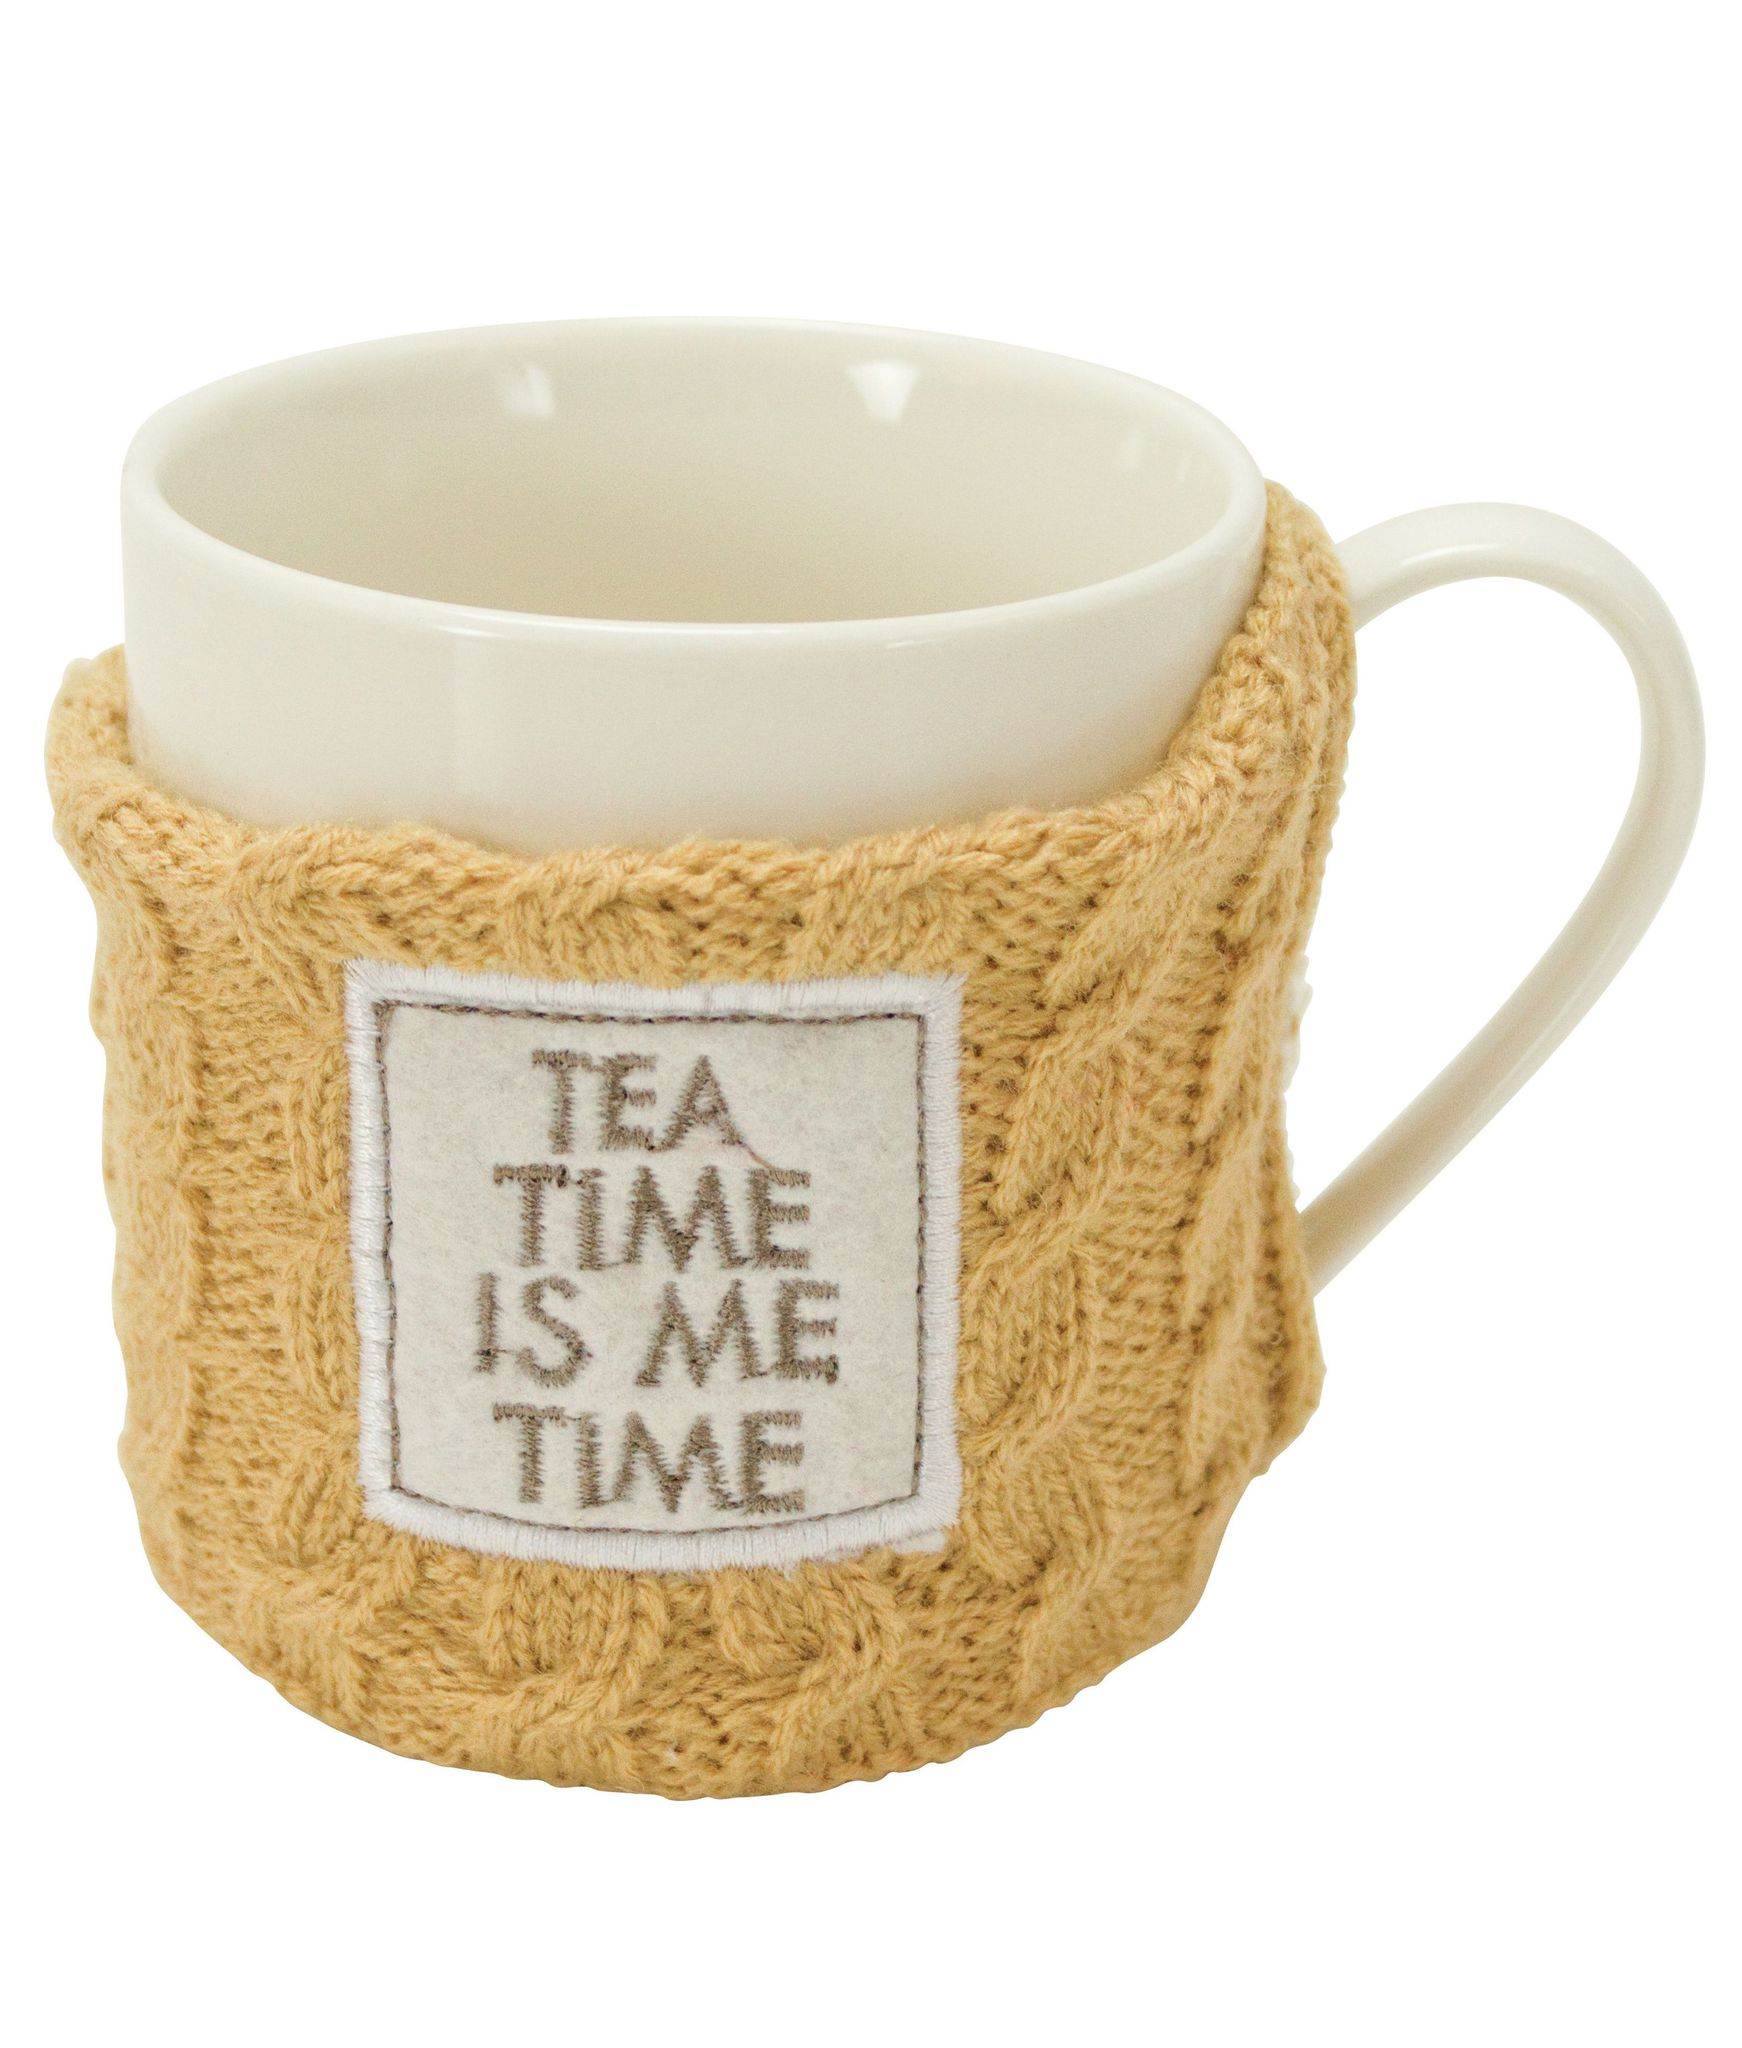 Кружки Кружка в свитере Boston Warehouse Sweater mug Tea Time kruzhka-v-svitere-boston-warehouse-sweater-mug-tea-time-ssha-kitay.jpg